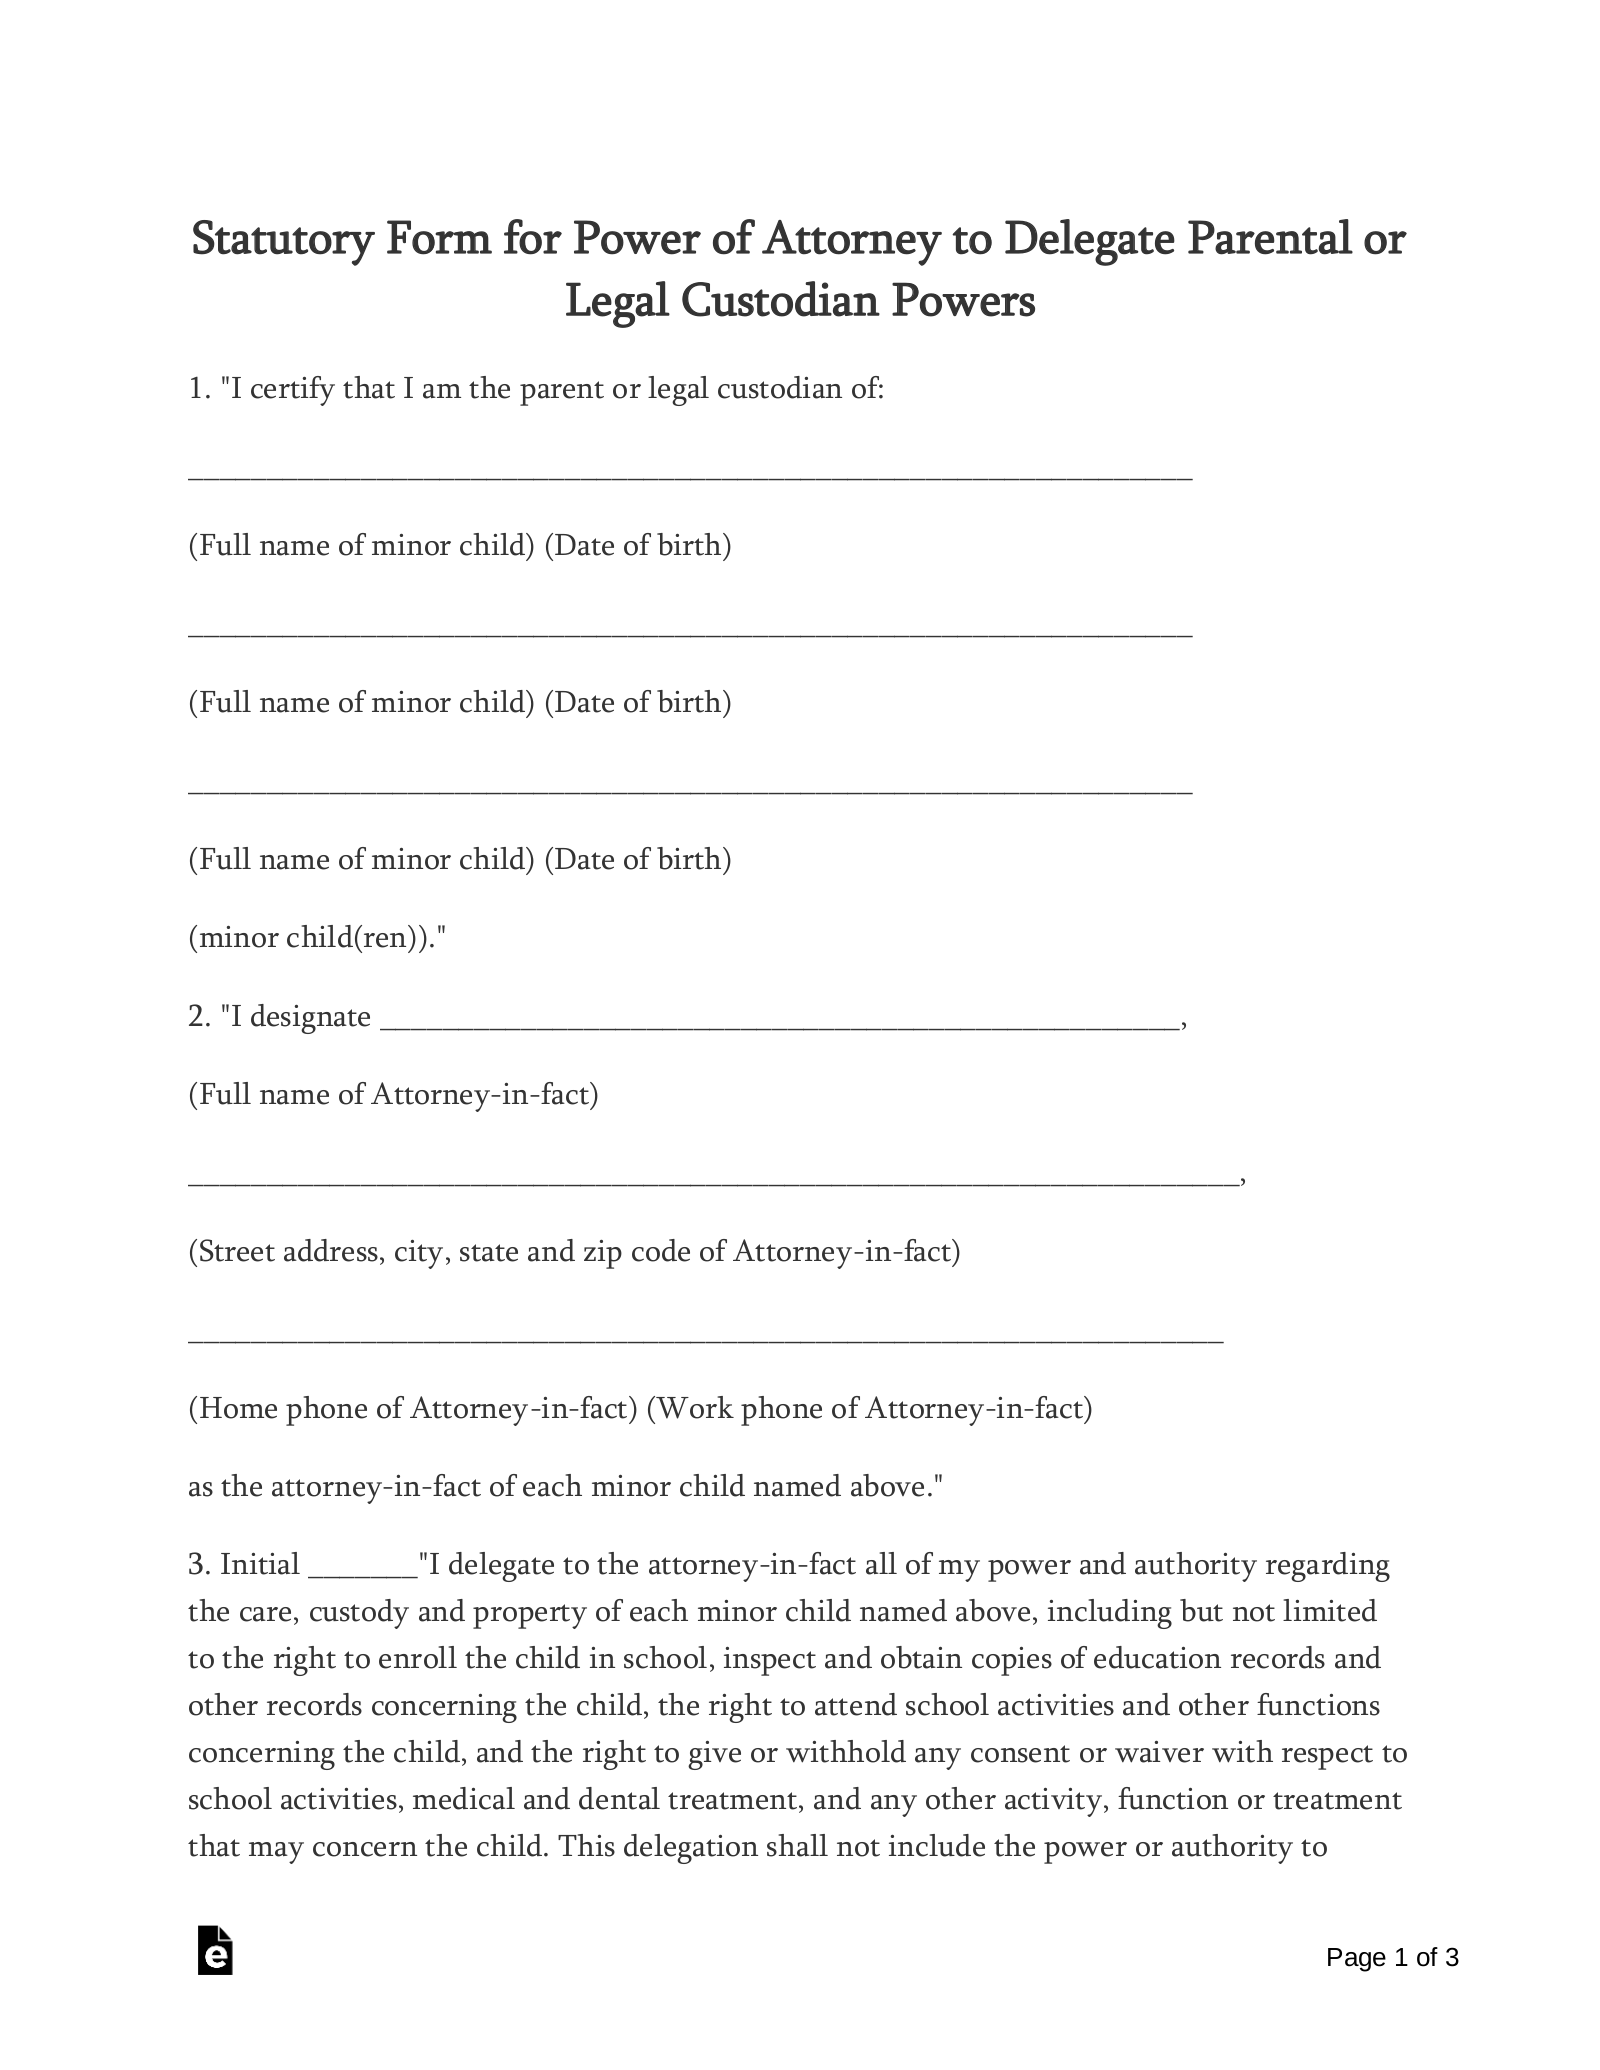 relinquish power of attorney form  Free Oklahoma Minor Child (Parental) Power of Attorney Form ...